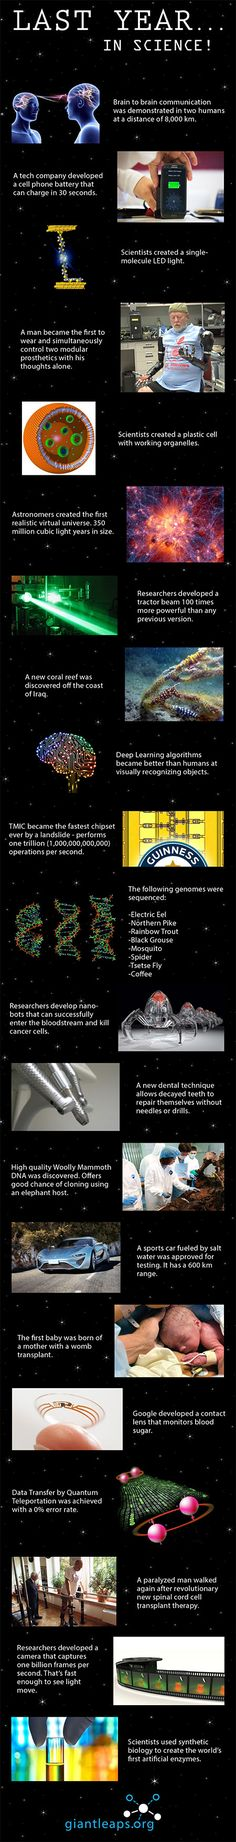 Here are some amazing scientific and technological breakthroughs that happened last year.